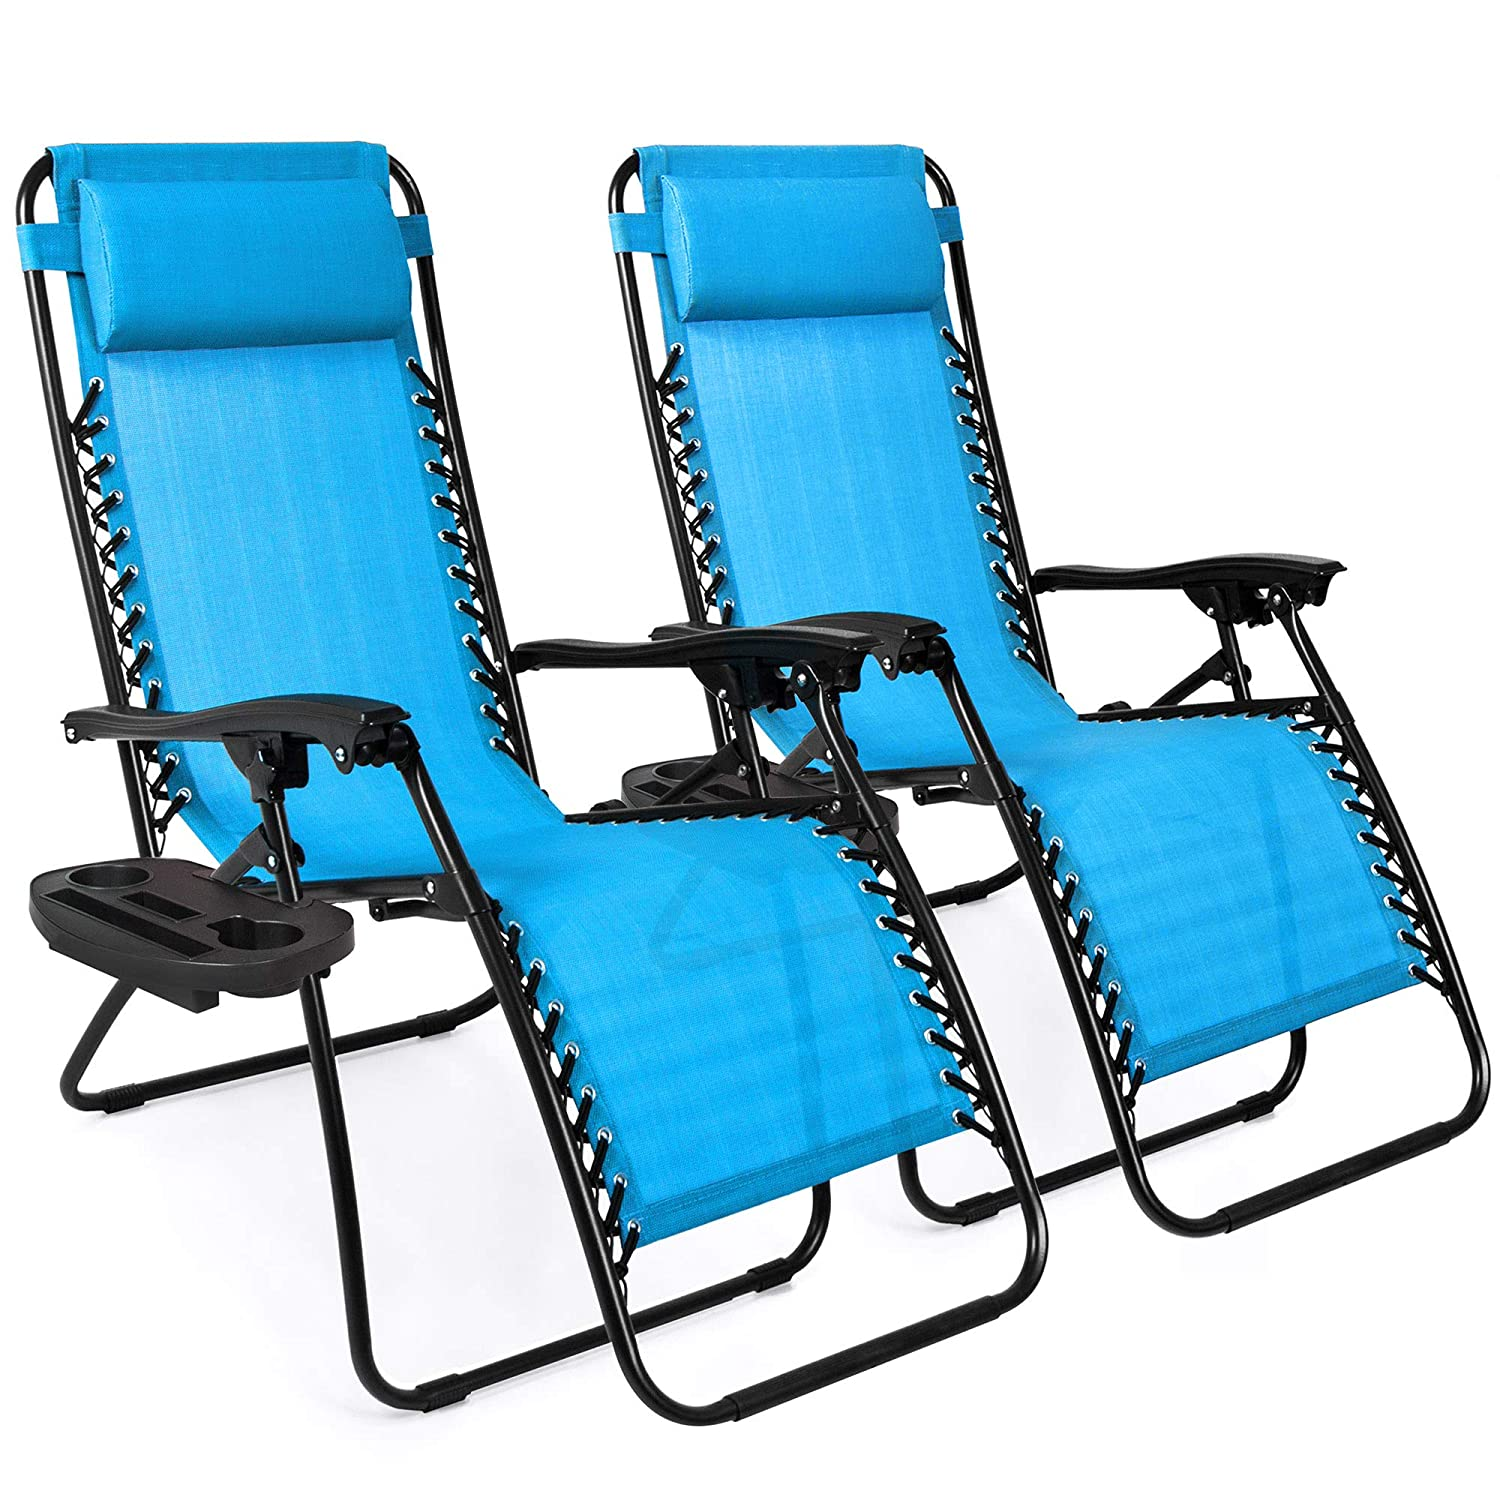 Set of 2 Adjustable Zero Gravity Lounge Chair Recliners for Patio